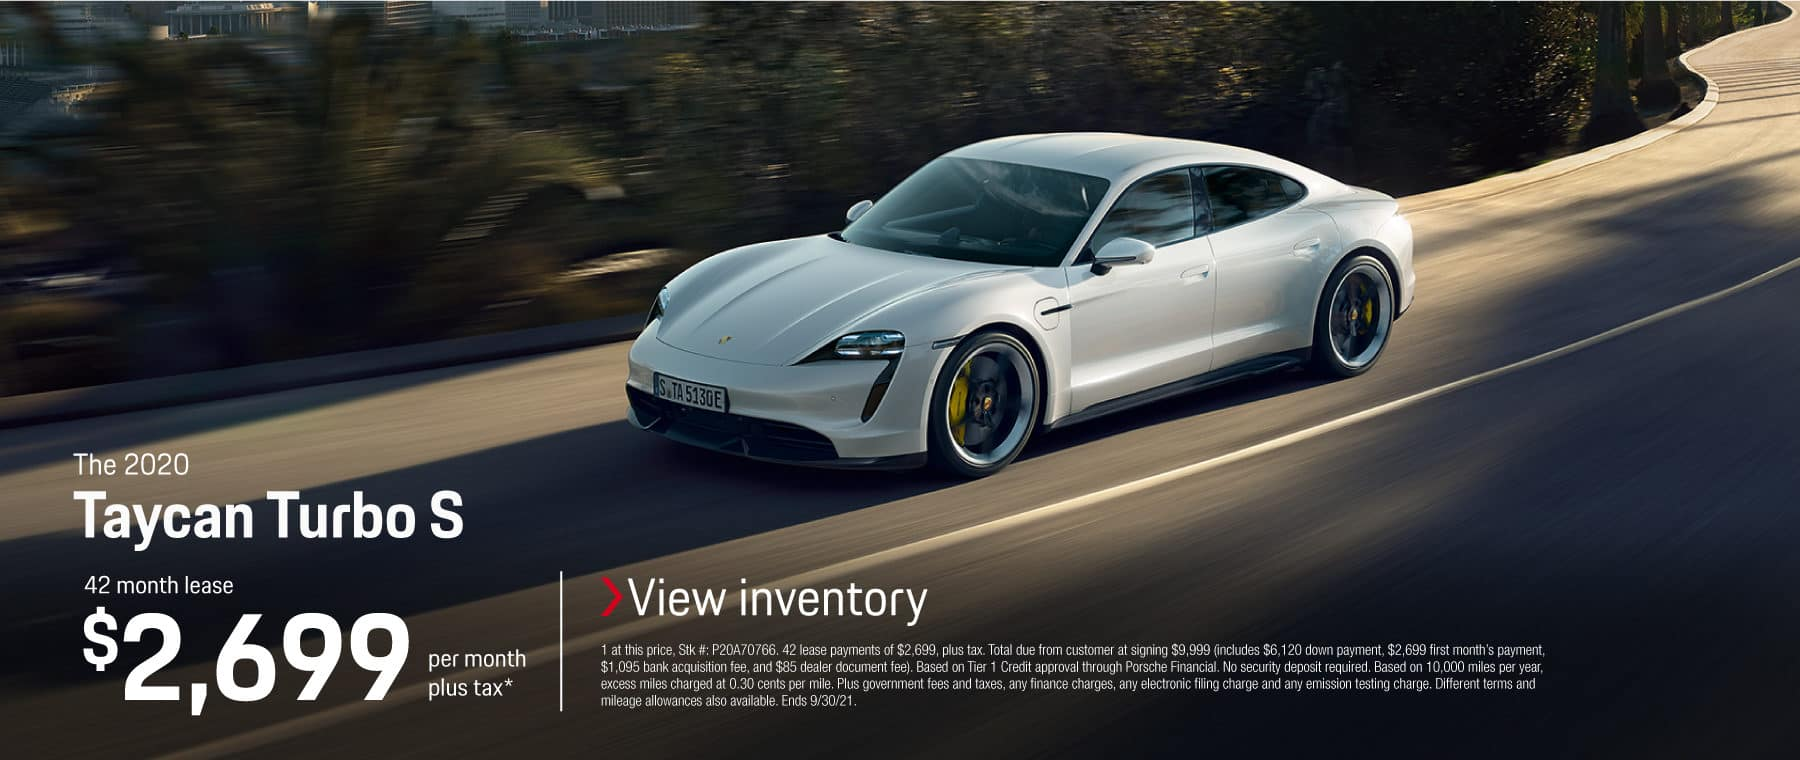 The 2020 Taycan Turbo S Lease